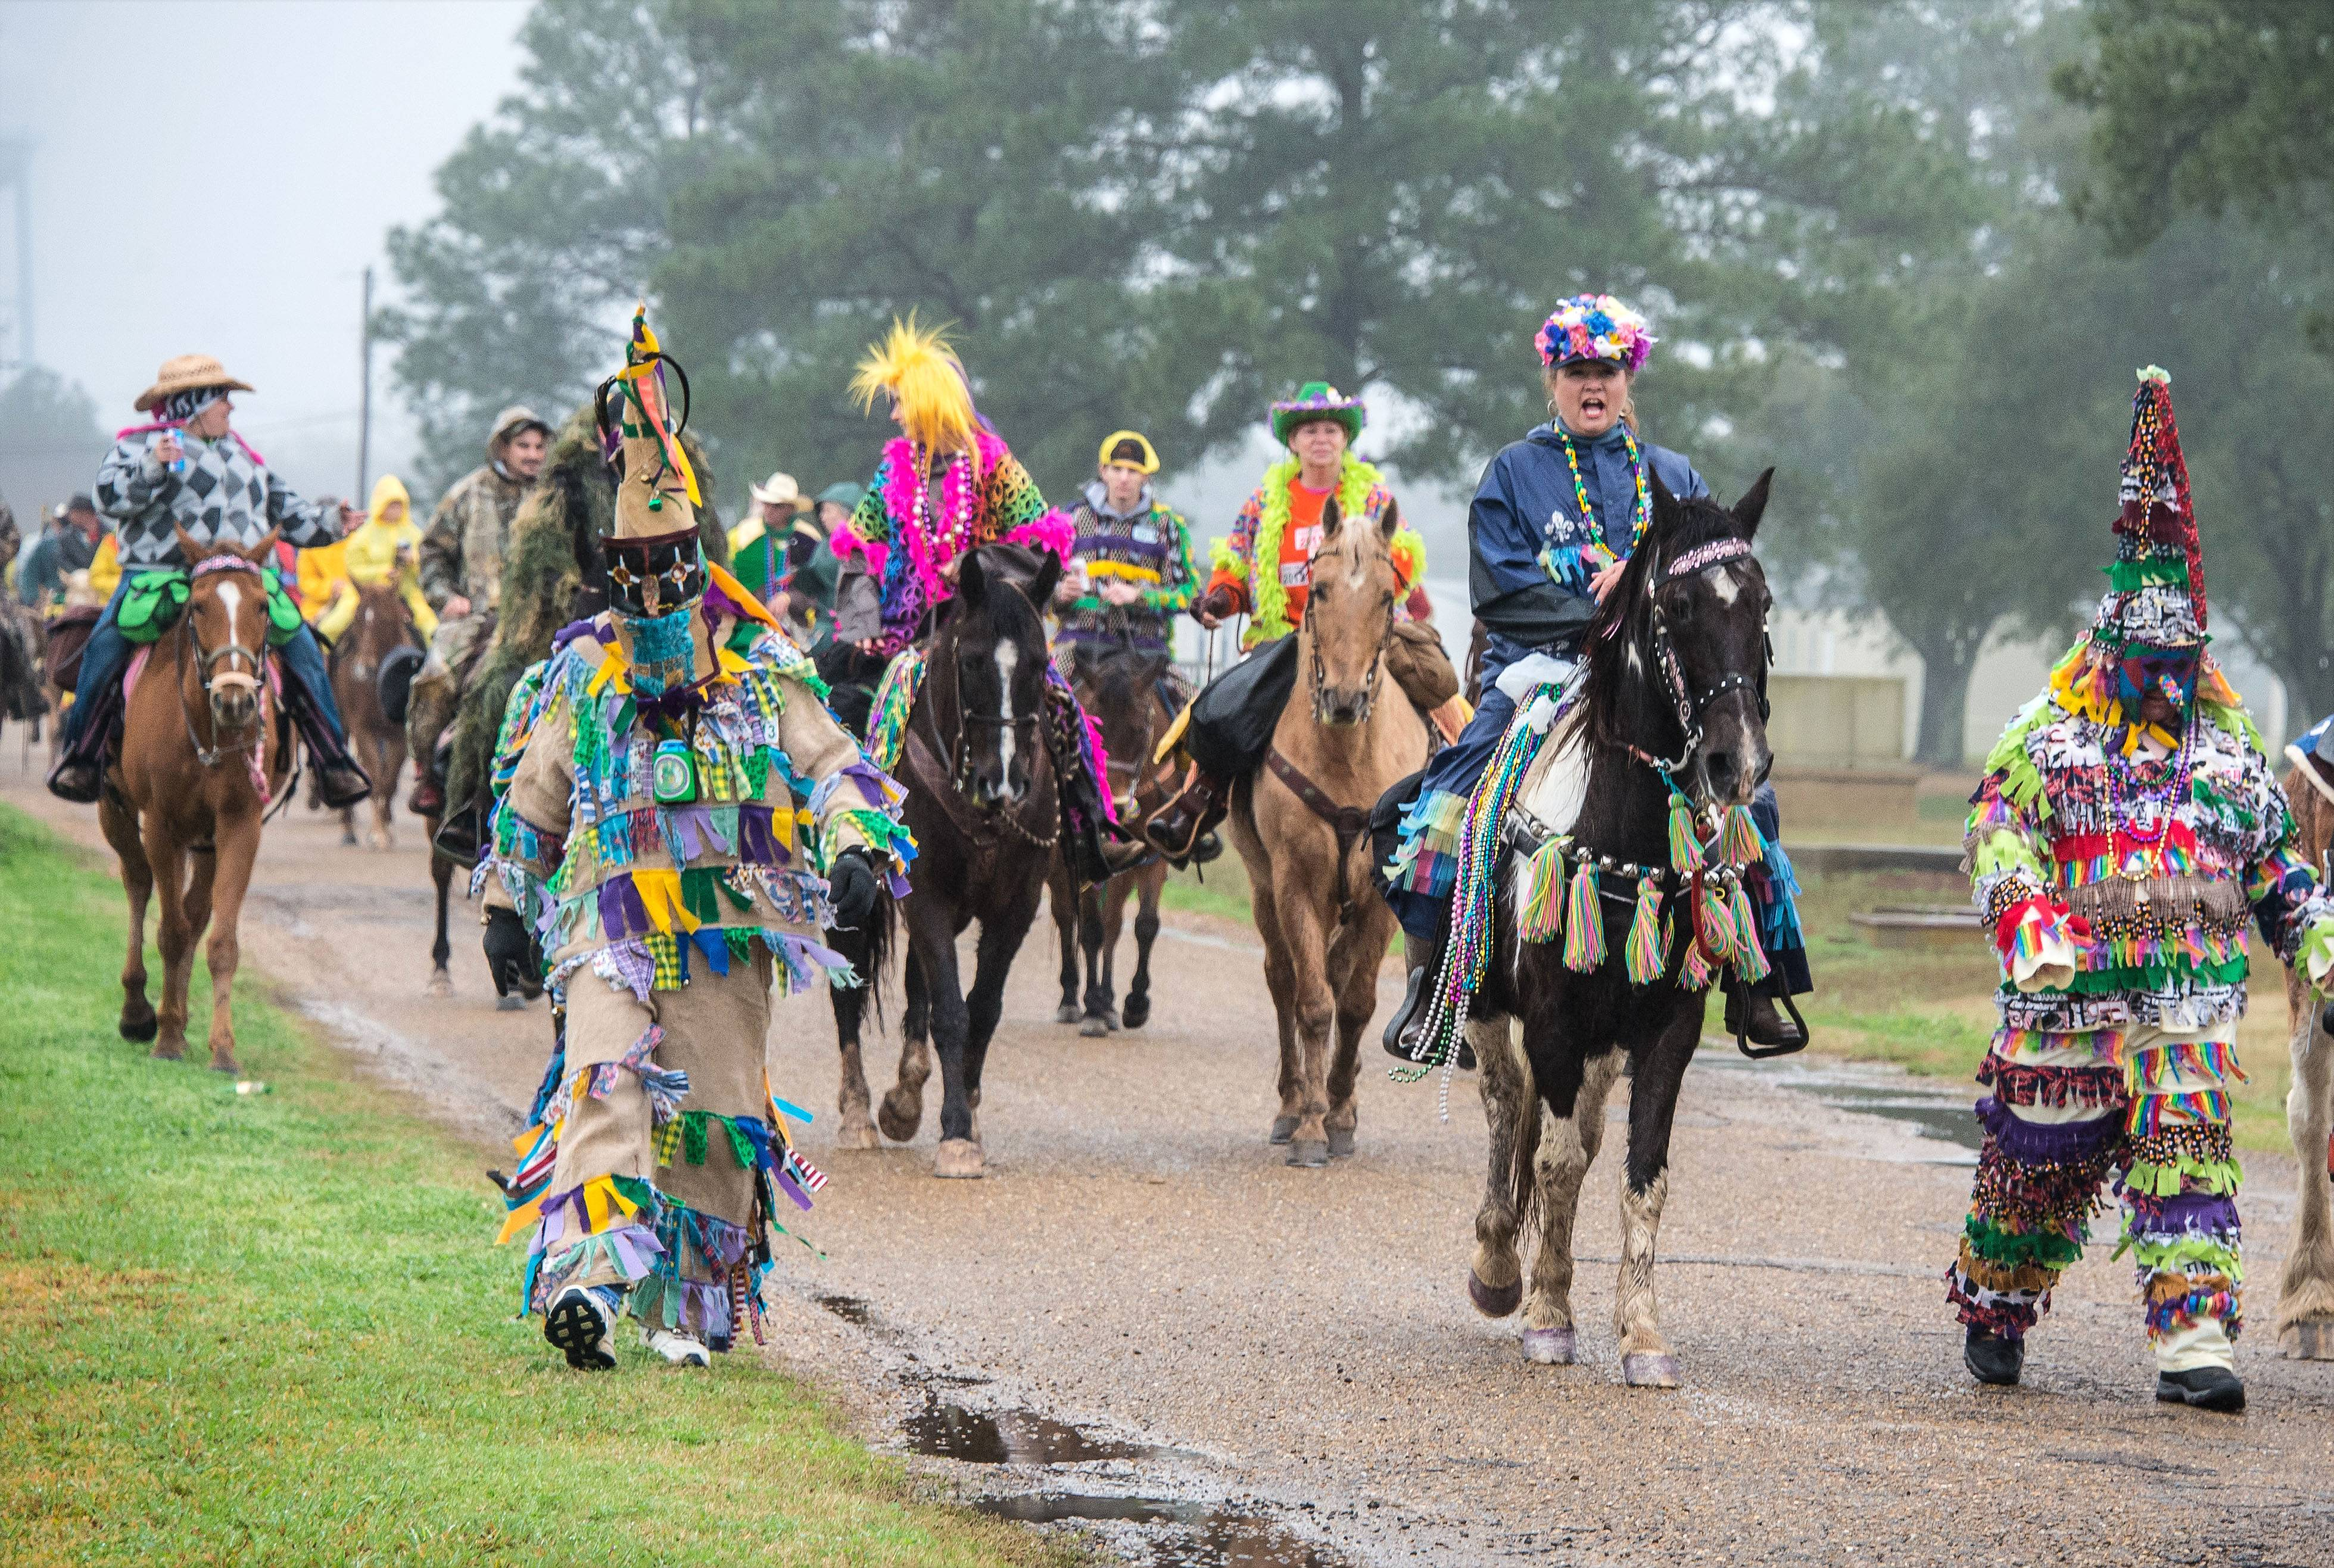 People from all over participate in the Courir de Mardi Gras in Eunice, La., a Mardi Gras season tradition in Louisiana's Cajun country. The courir is a procession on foot, horseback and by trailer, rooted in a rural custom of gathering ingredients for a communal meal from area farms.